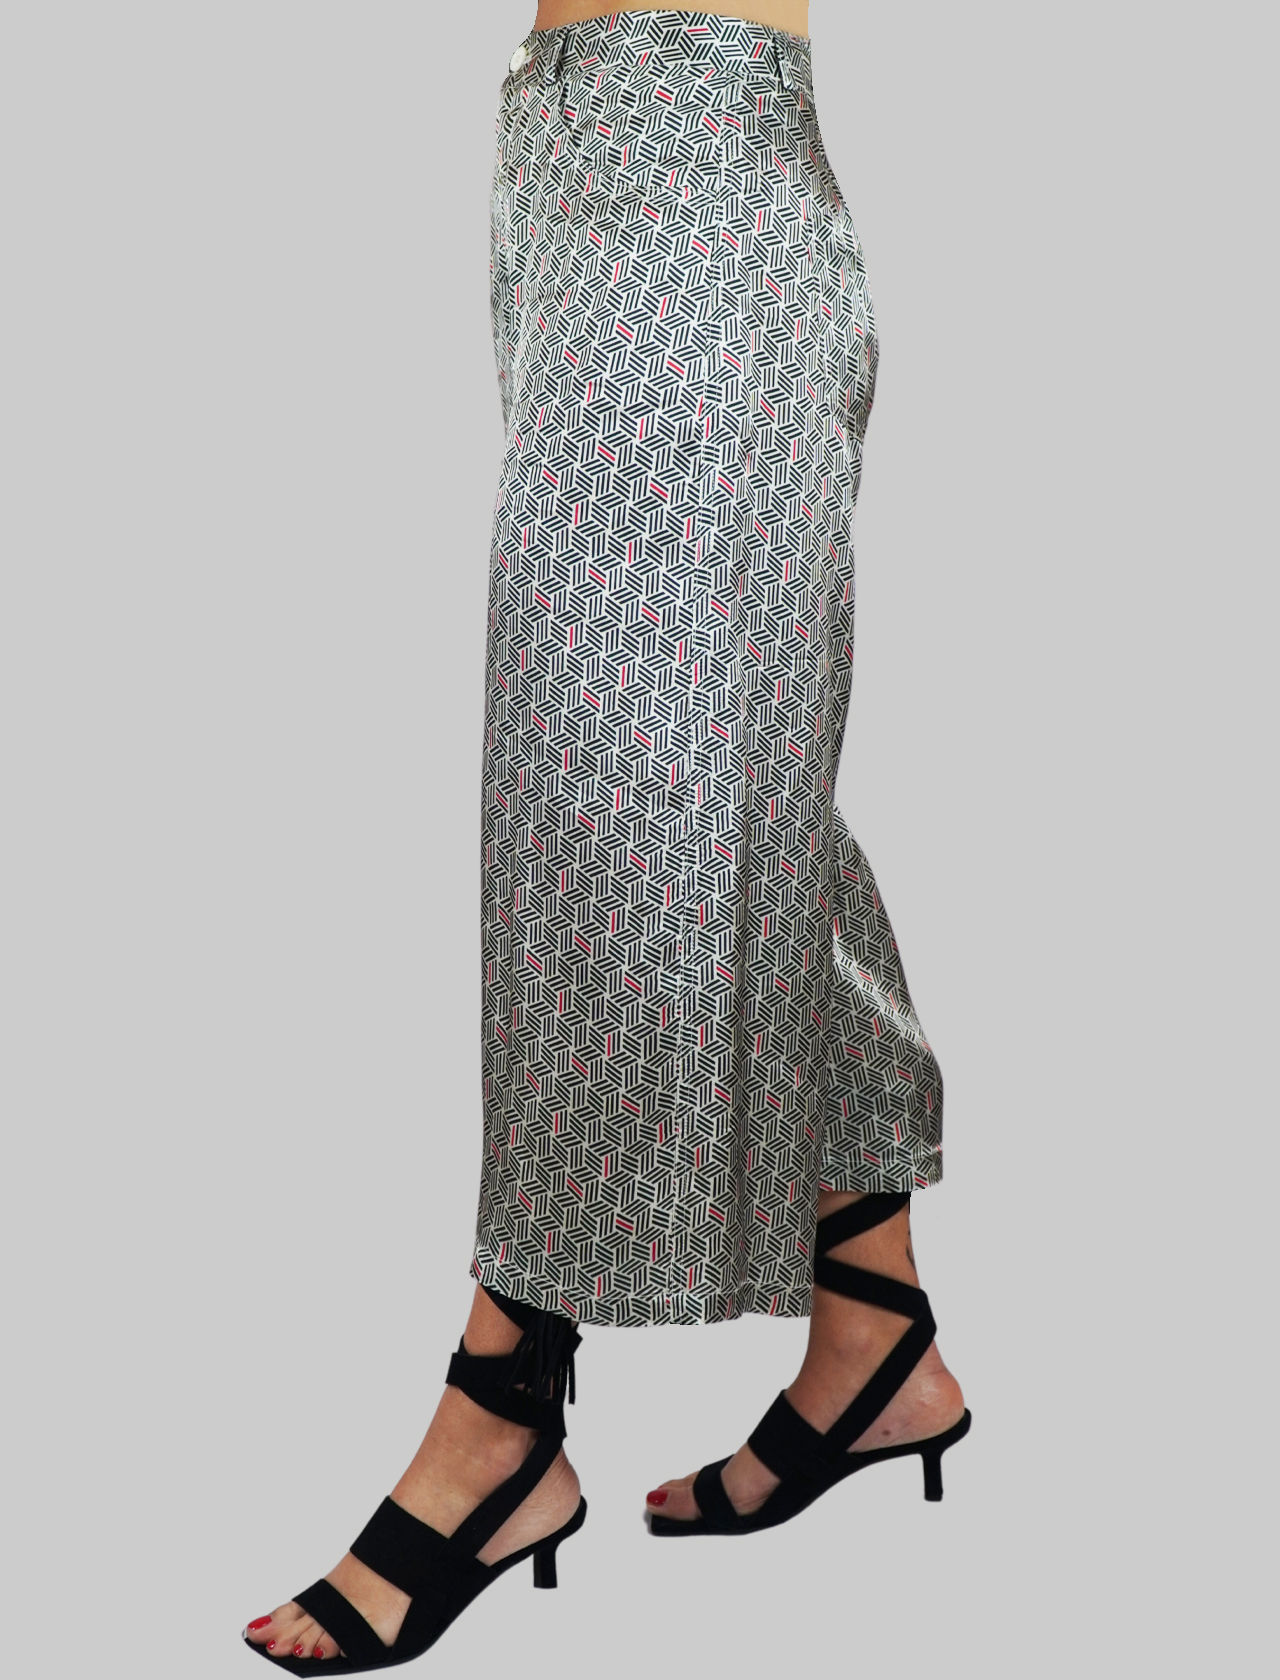 Women's Clothing Black and White Pajama Patterned Trousers with Welt Pockets Mercì | Skirts and Pants | P297900